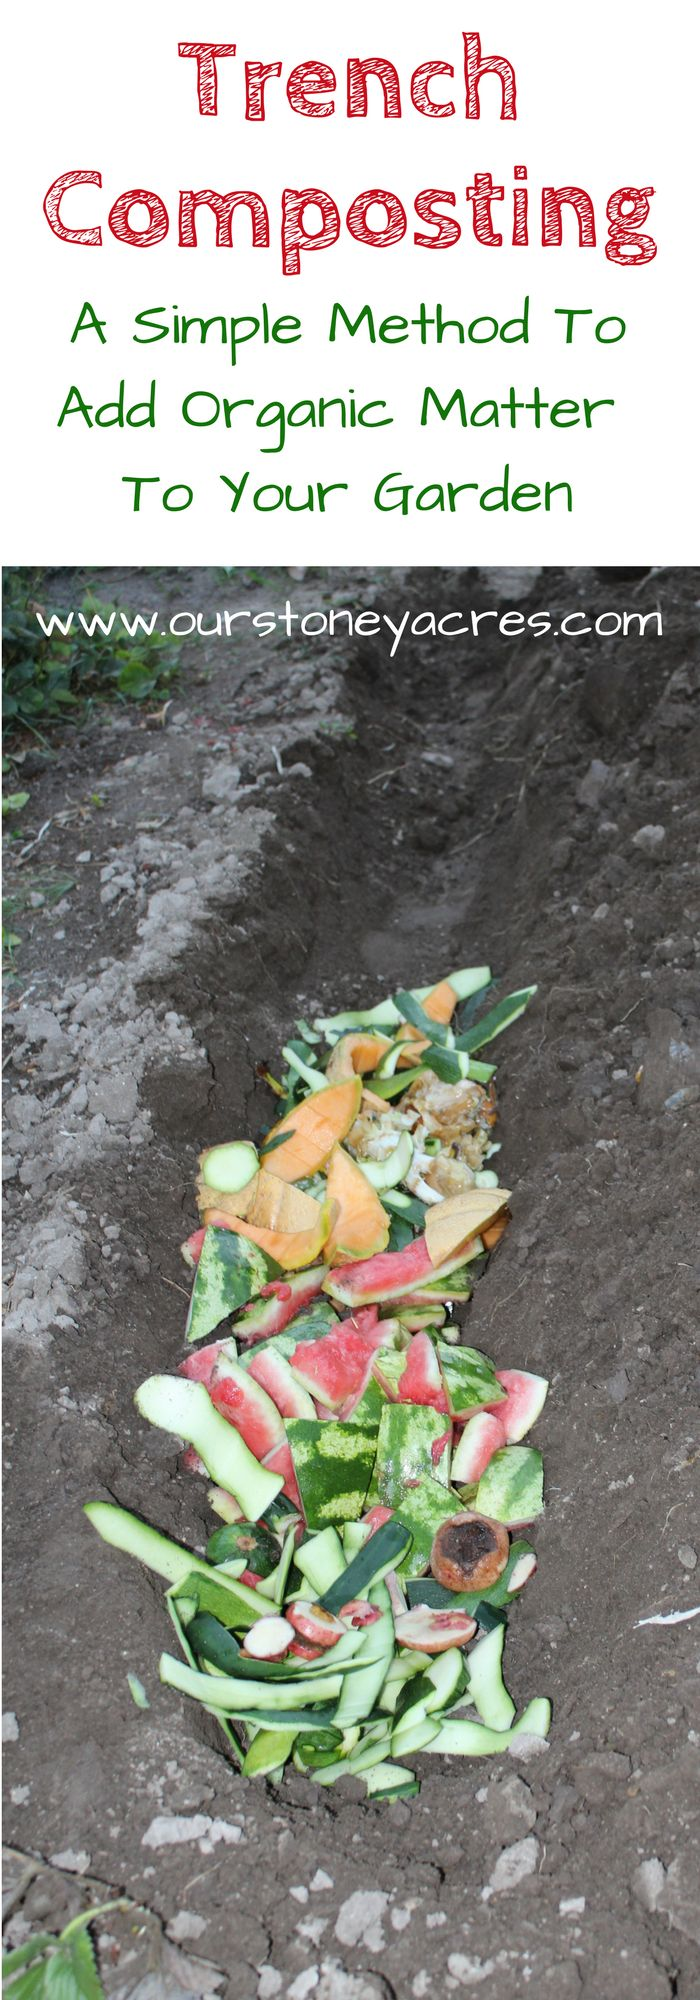 #2 -Trench Composting - Trench composting fits perfectly into my crazy gardening life. It's much simpler than trying to constantly have a pile of cooking compost.  This method makes composting easy and adds rich organic compost to your garden.  It works especially well for fall composting!